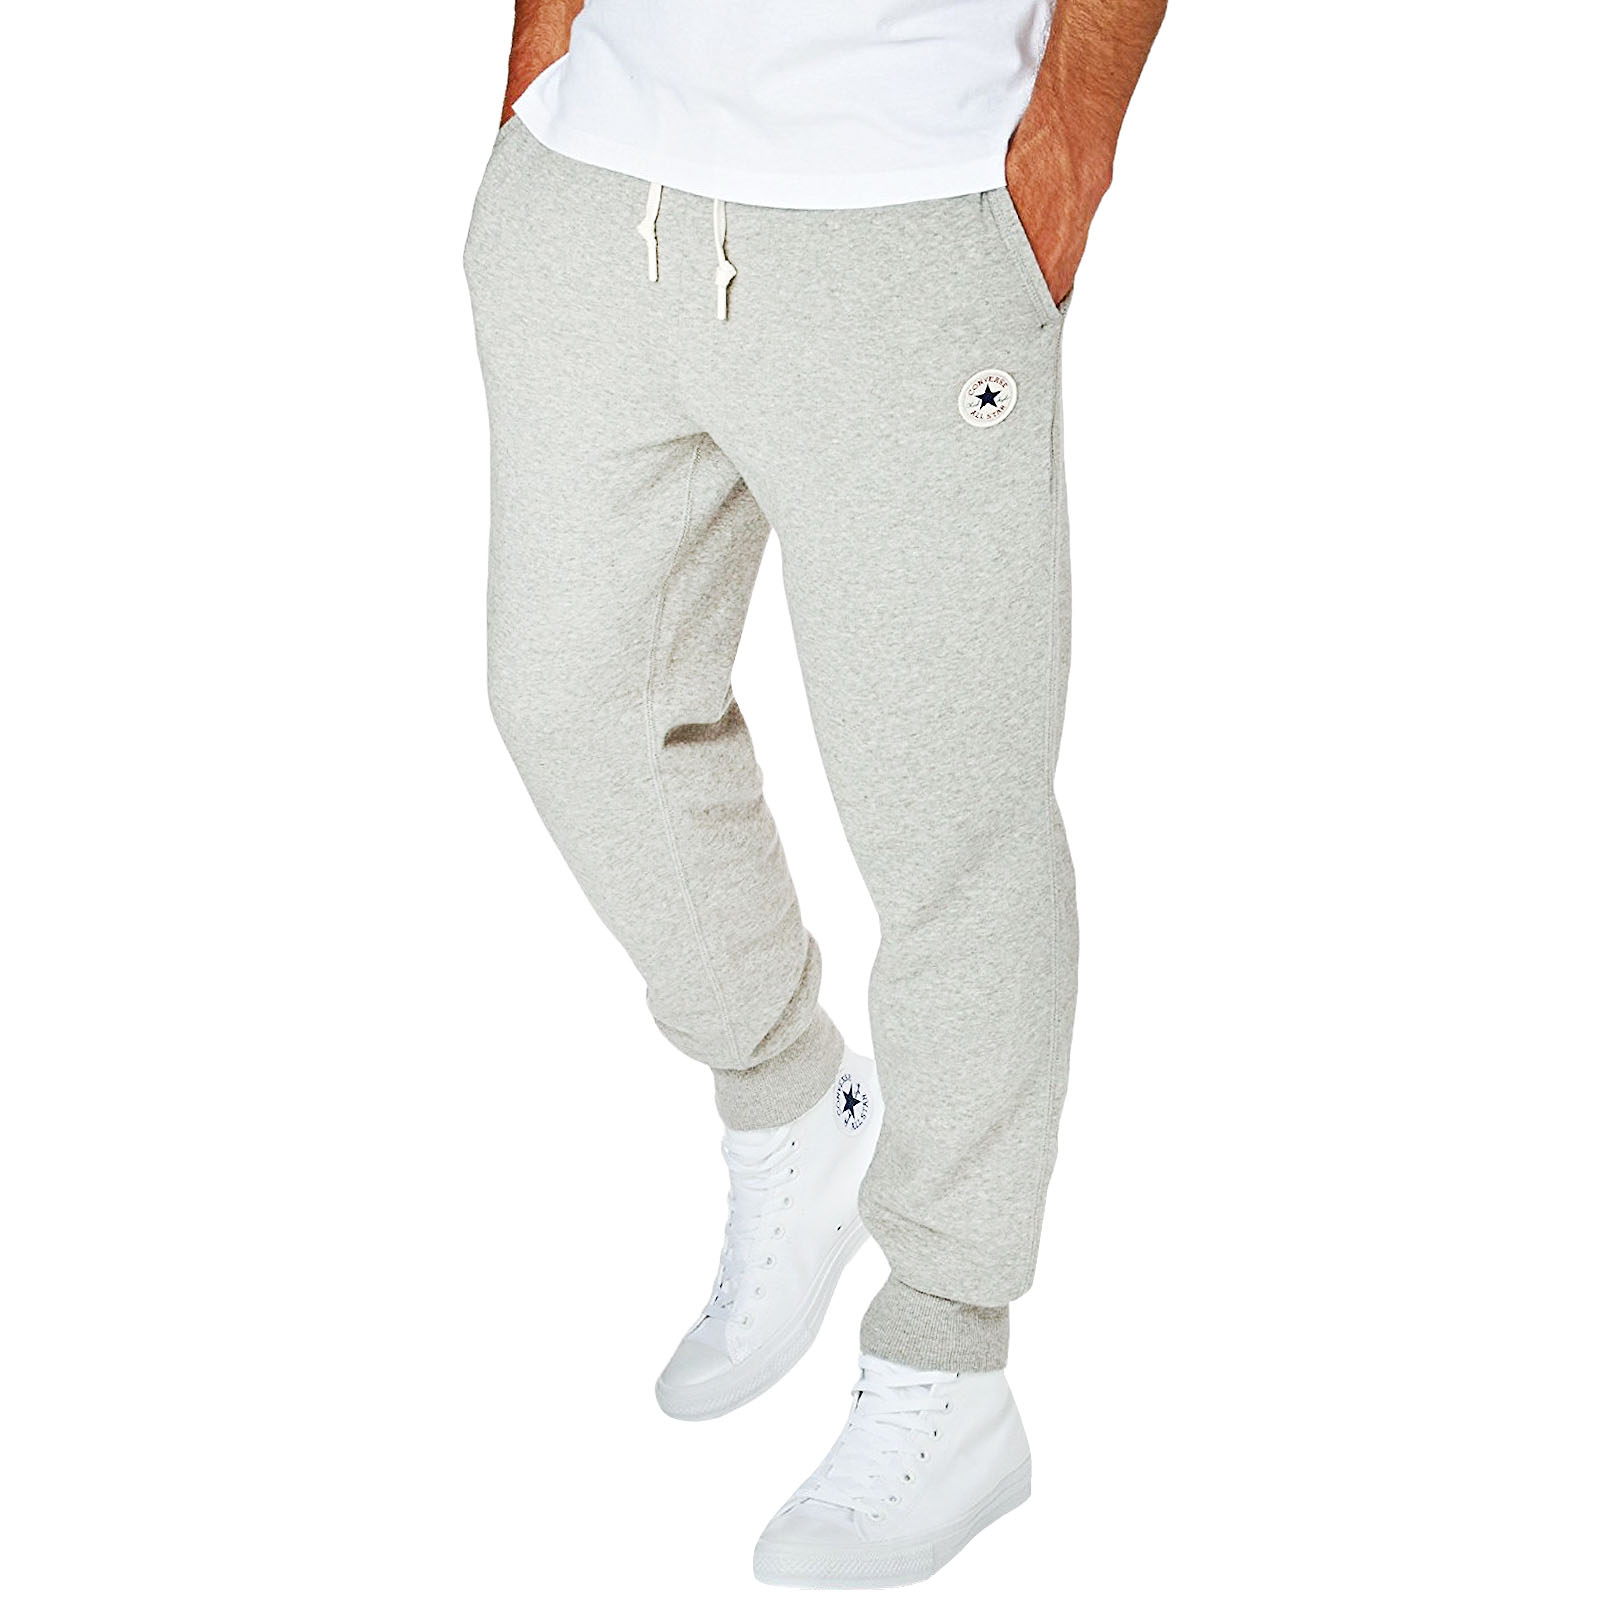 777578261dc0 Details about Converse Core Mens All Star Chuck Rib Cuff Joggers Jogging  Bottoms Pants - Grey